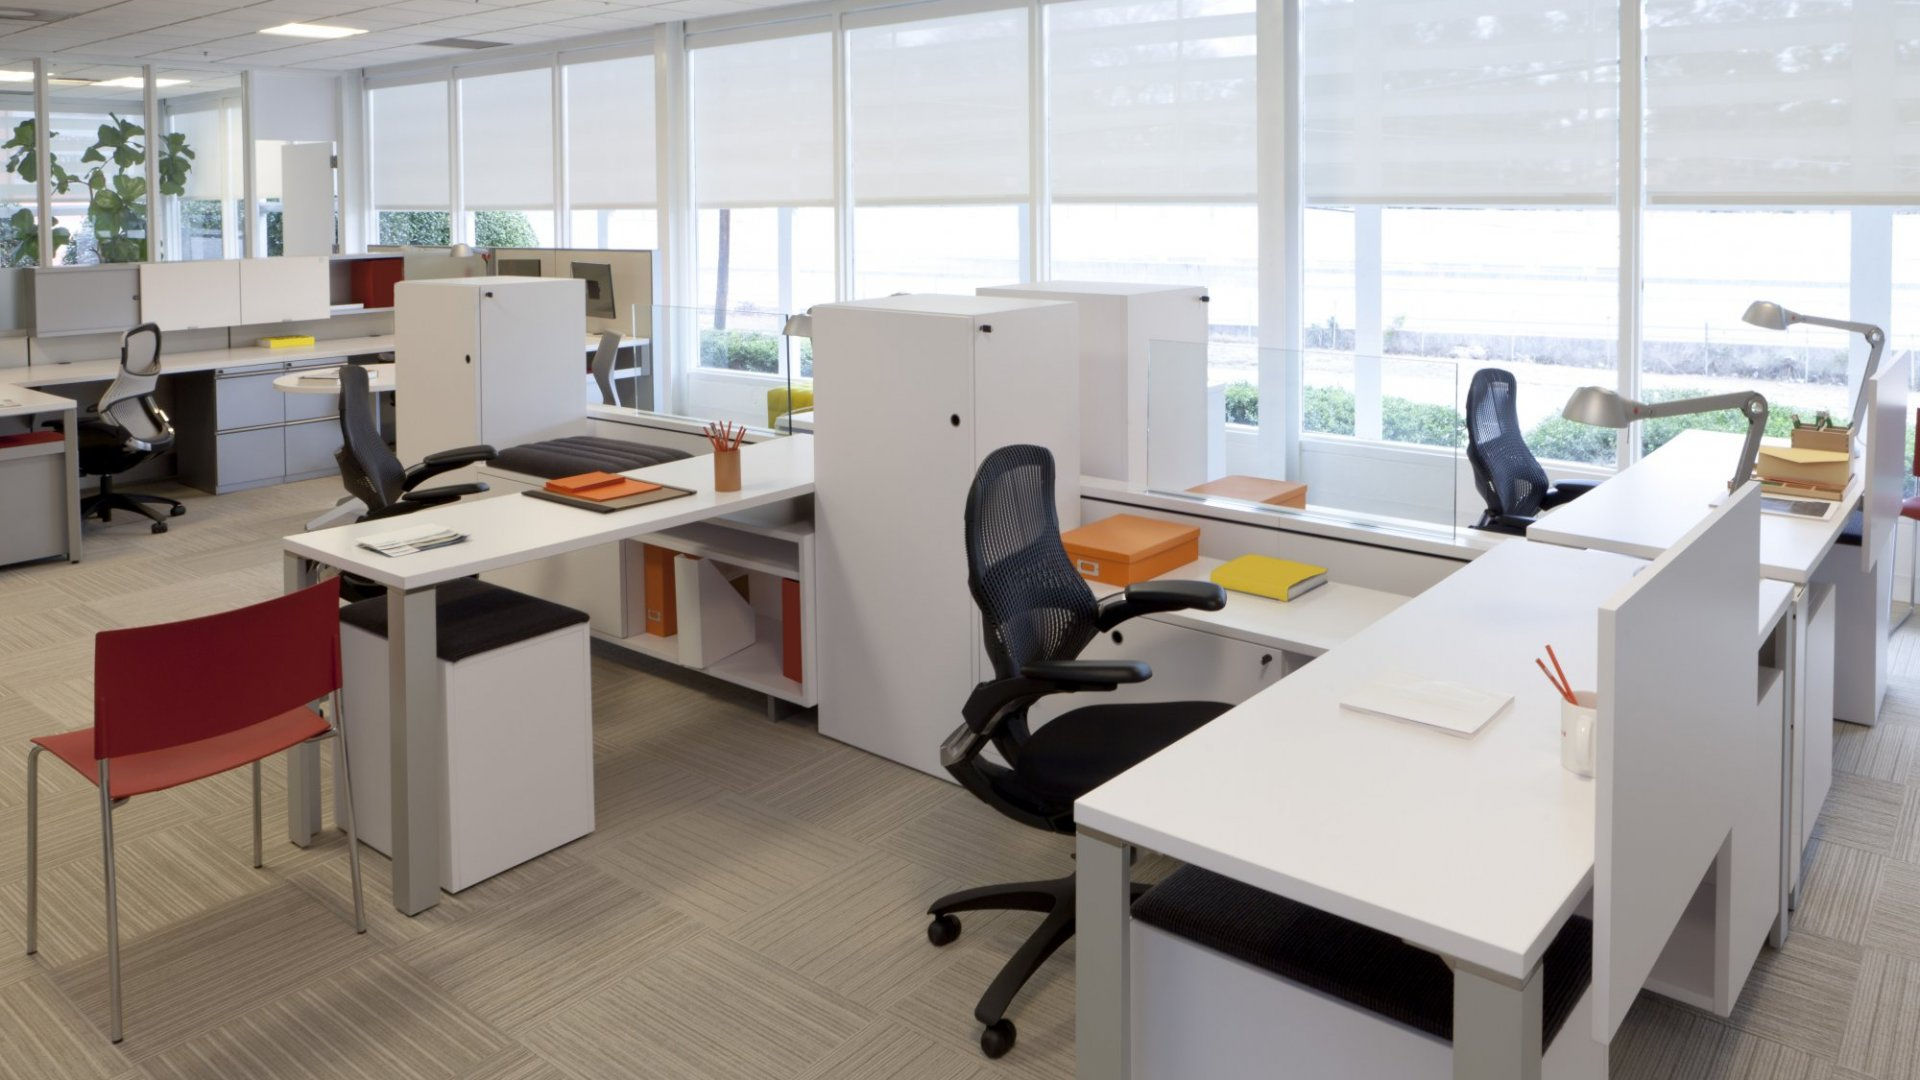 7 Ways to Feng Shui a Cubicle, Desk or Entire Office | Inc.com